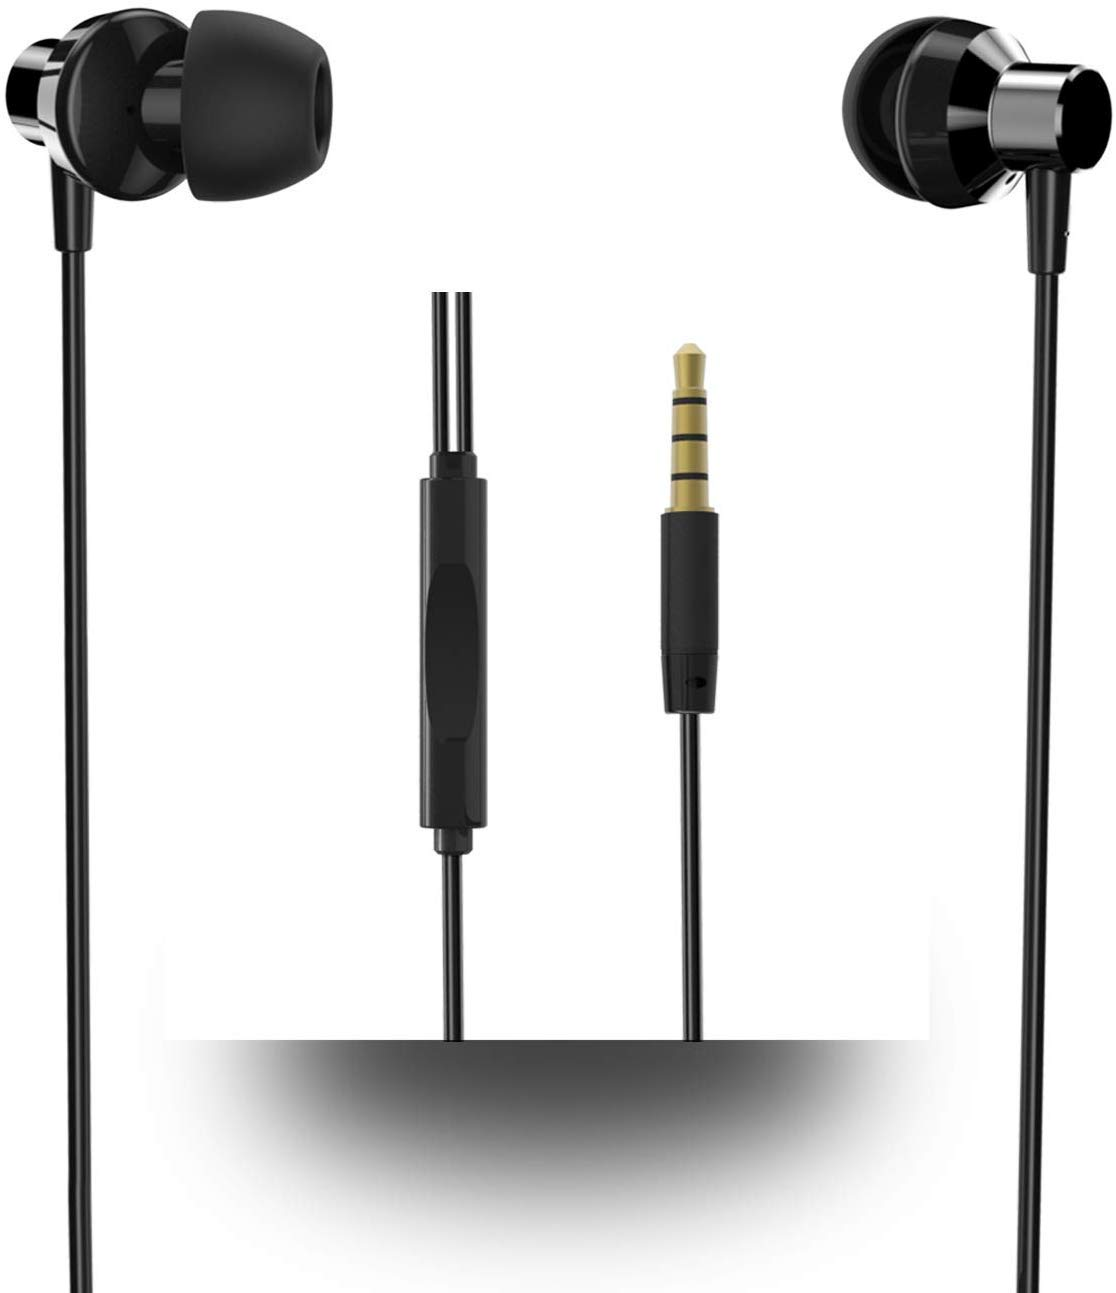 Wired Earphones,HOTWAV Earbuds with Microphone Control, Noise Isolating in Ear Headphone for Digital Devices Such as Smartphones,Tablets and More. Black